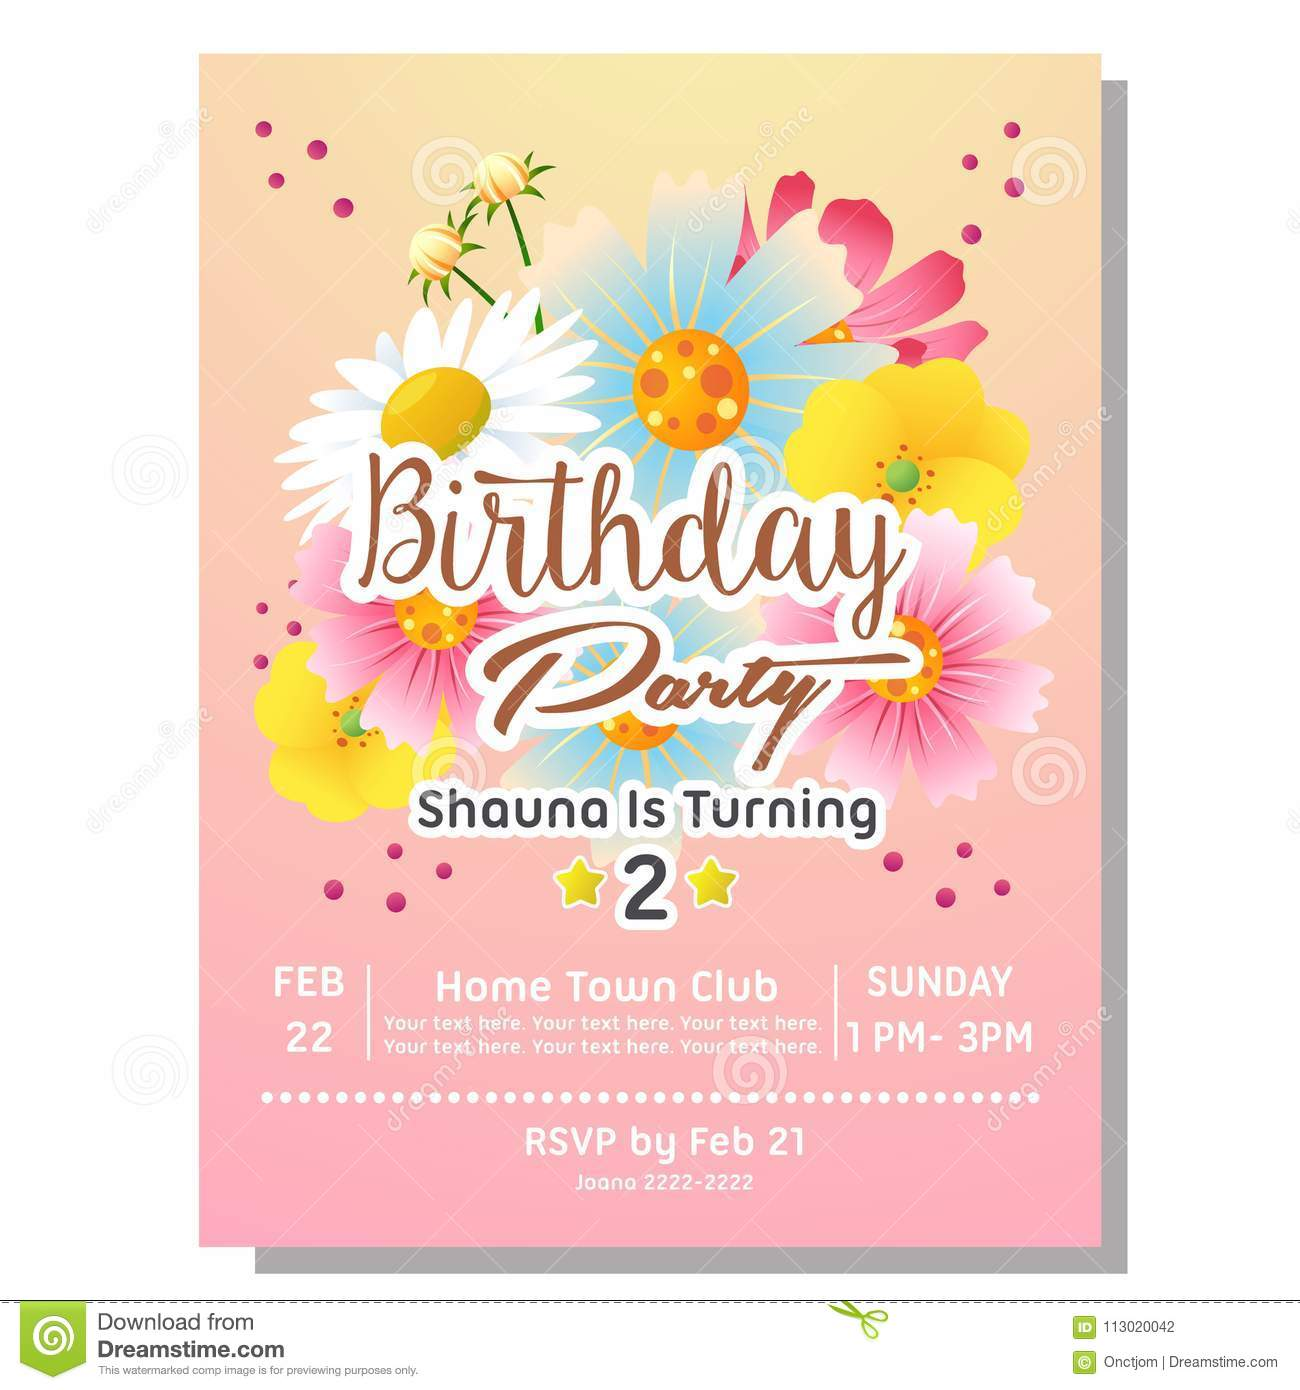 2nd Birthday Party Invitation Card Template With Flower